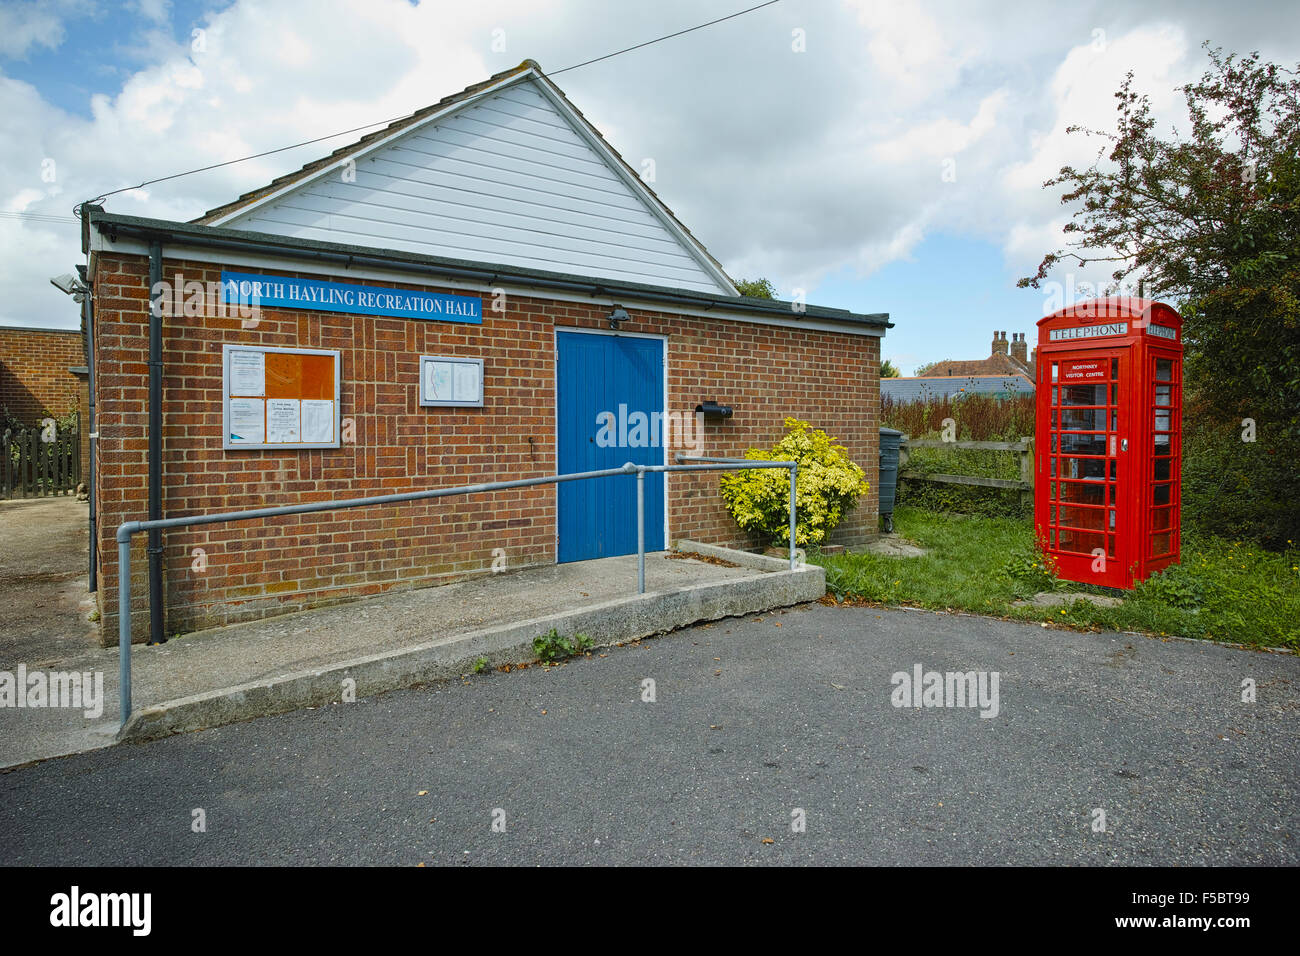 Village hall with red telephone kiosk tourist information centre showing the important of places to meet in rural - Stock Image